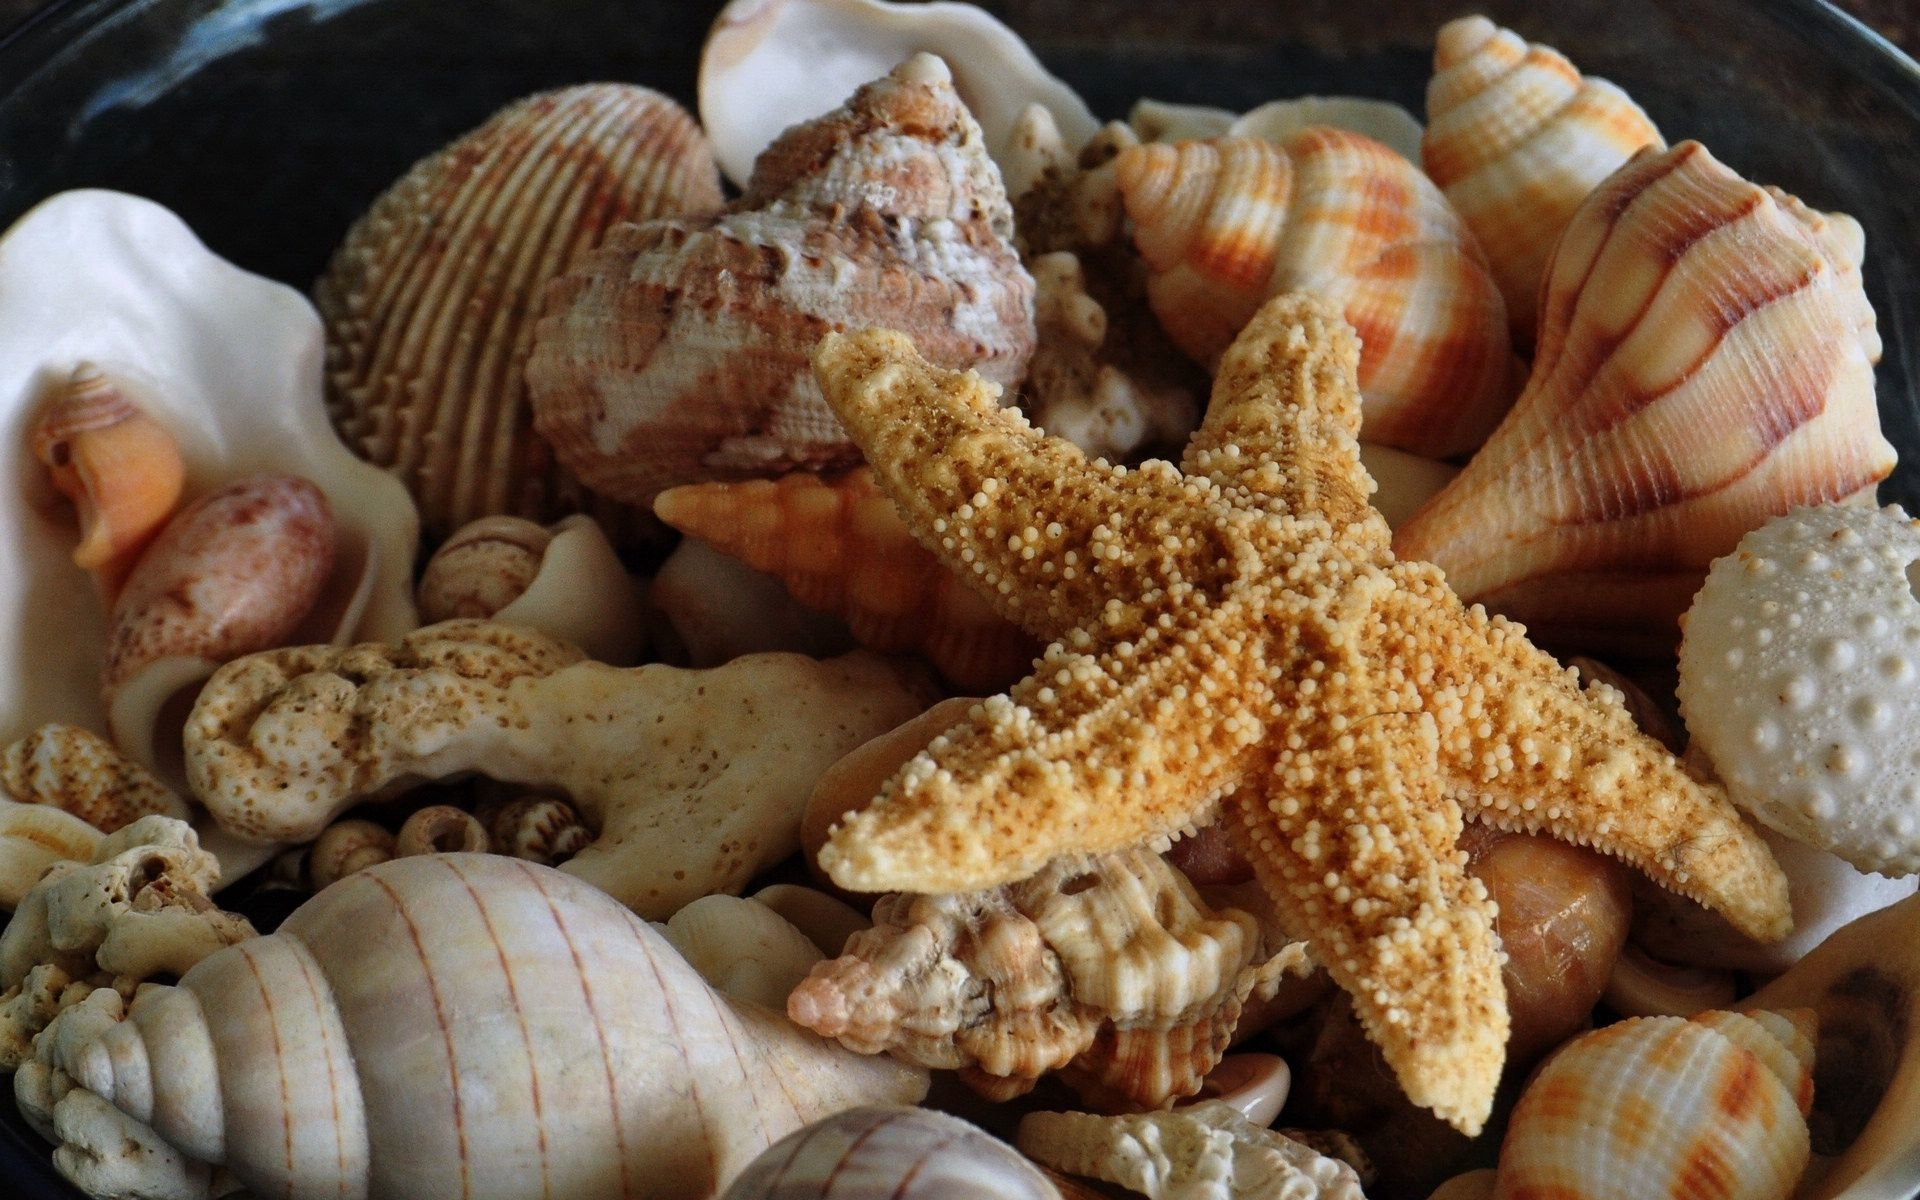 Awesome Starfish free wallpaper ID:29682 for hd 1920x1200 desktop